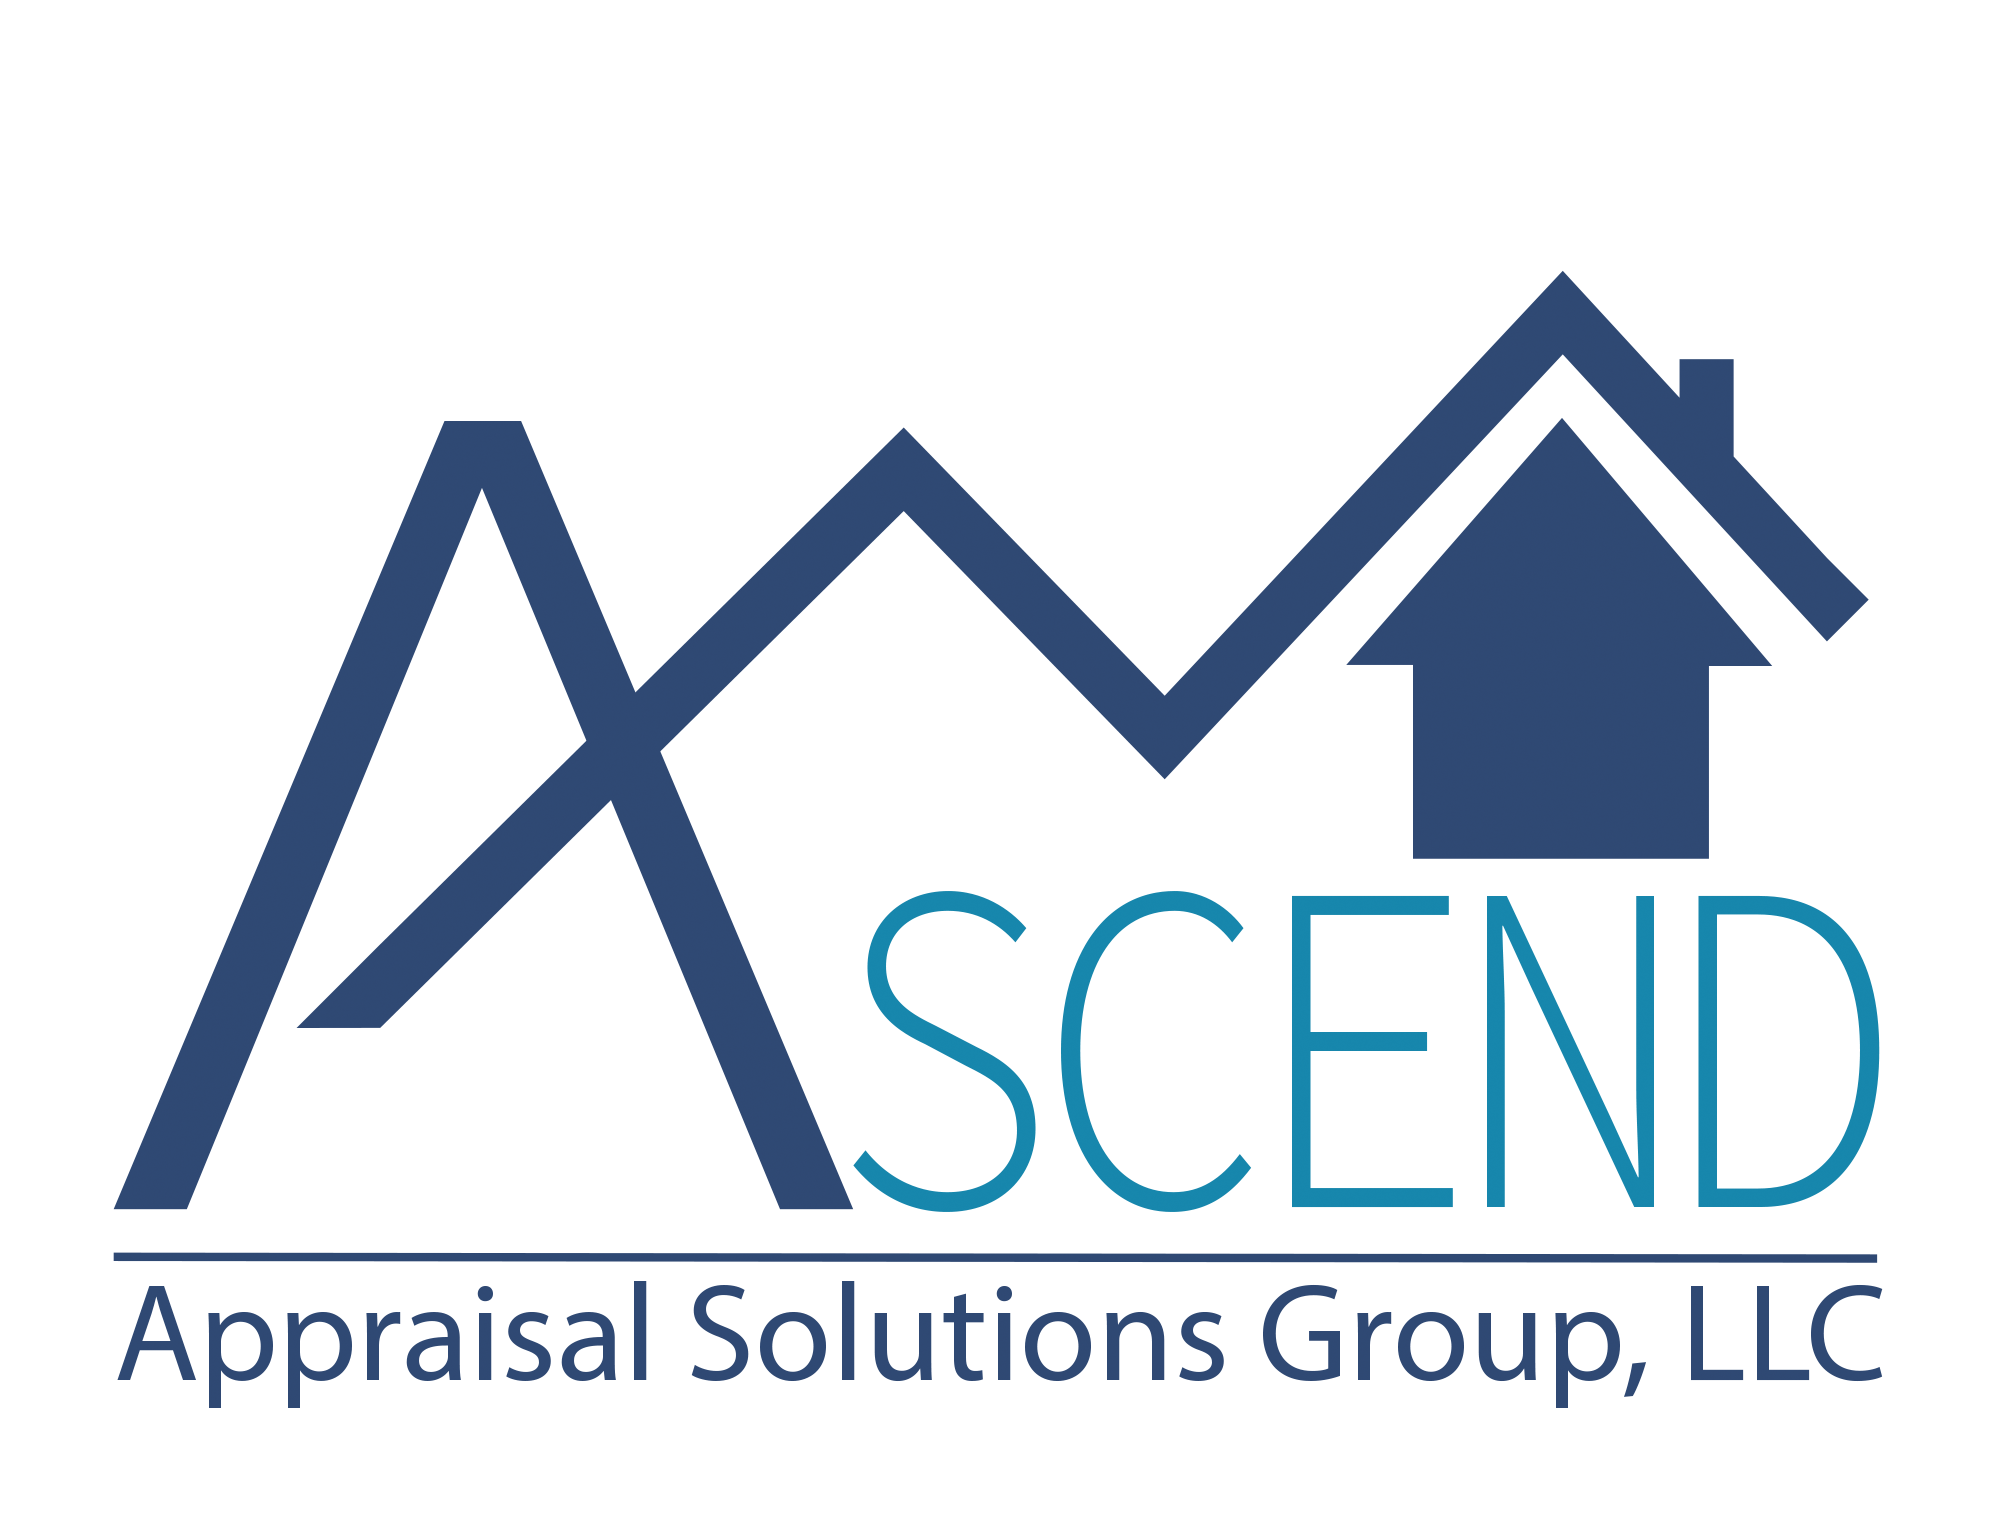 Hole Sponsors - Ascend Appraisal Solutions Group - Logo